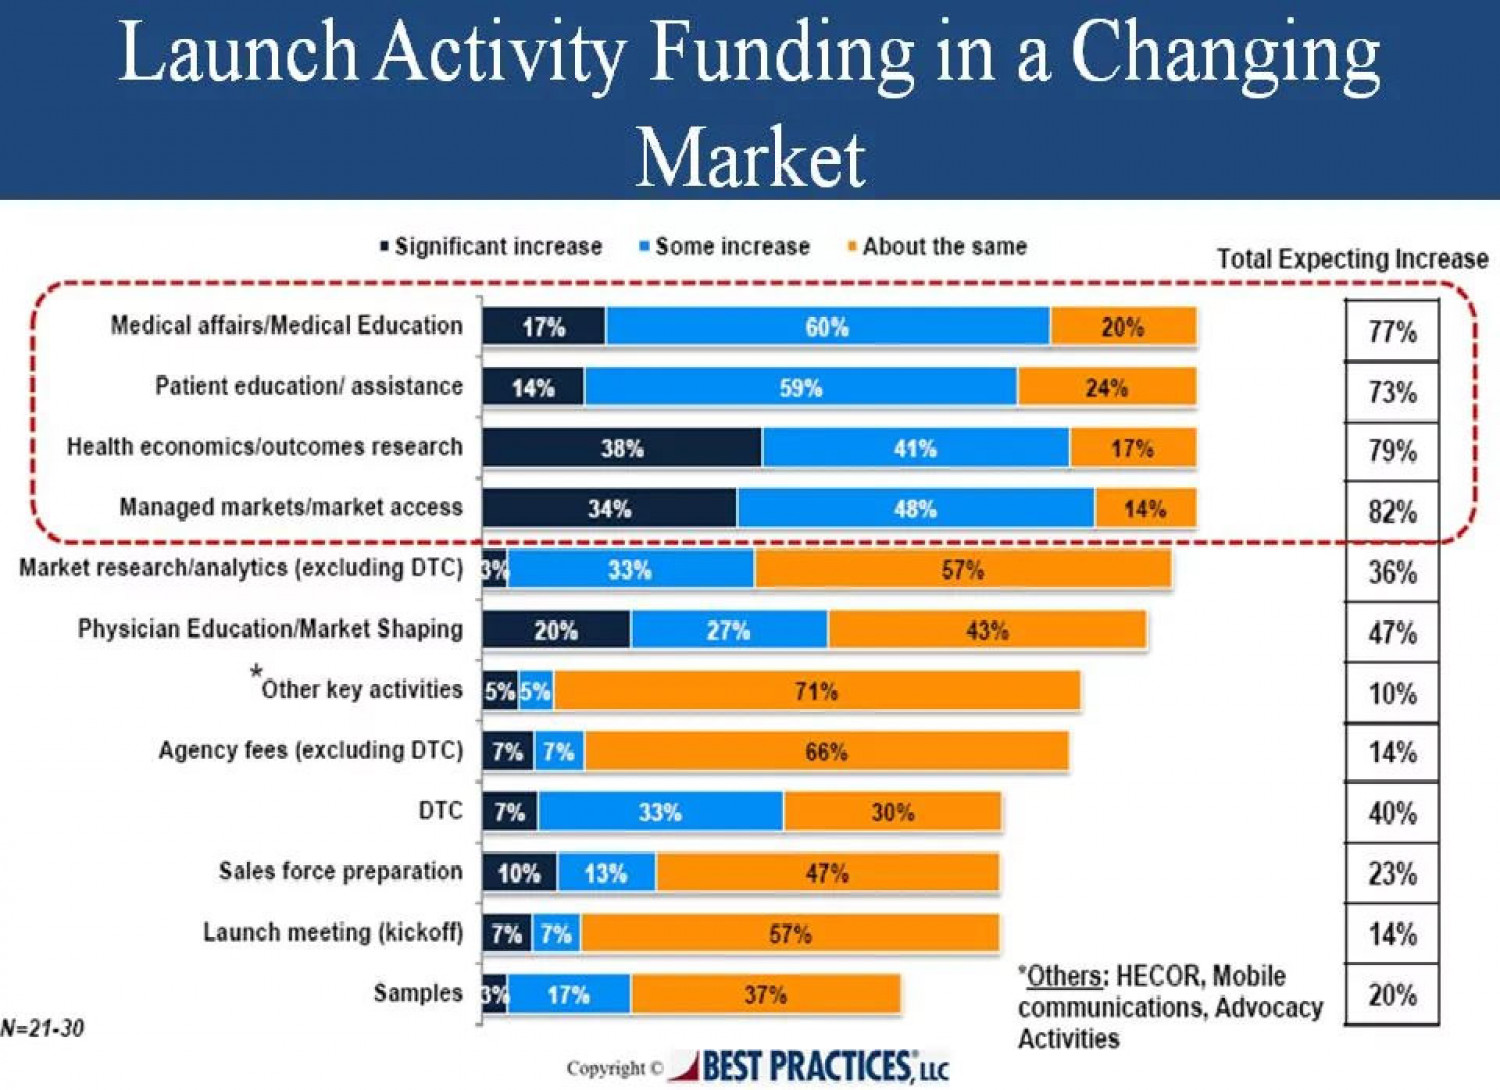 Pharma Product Launch Activity Funding in a Changing Market Infographic